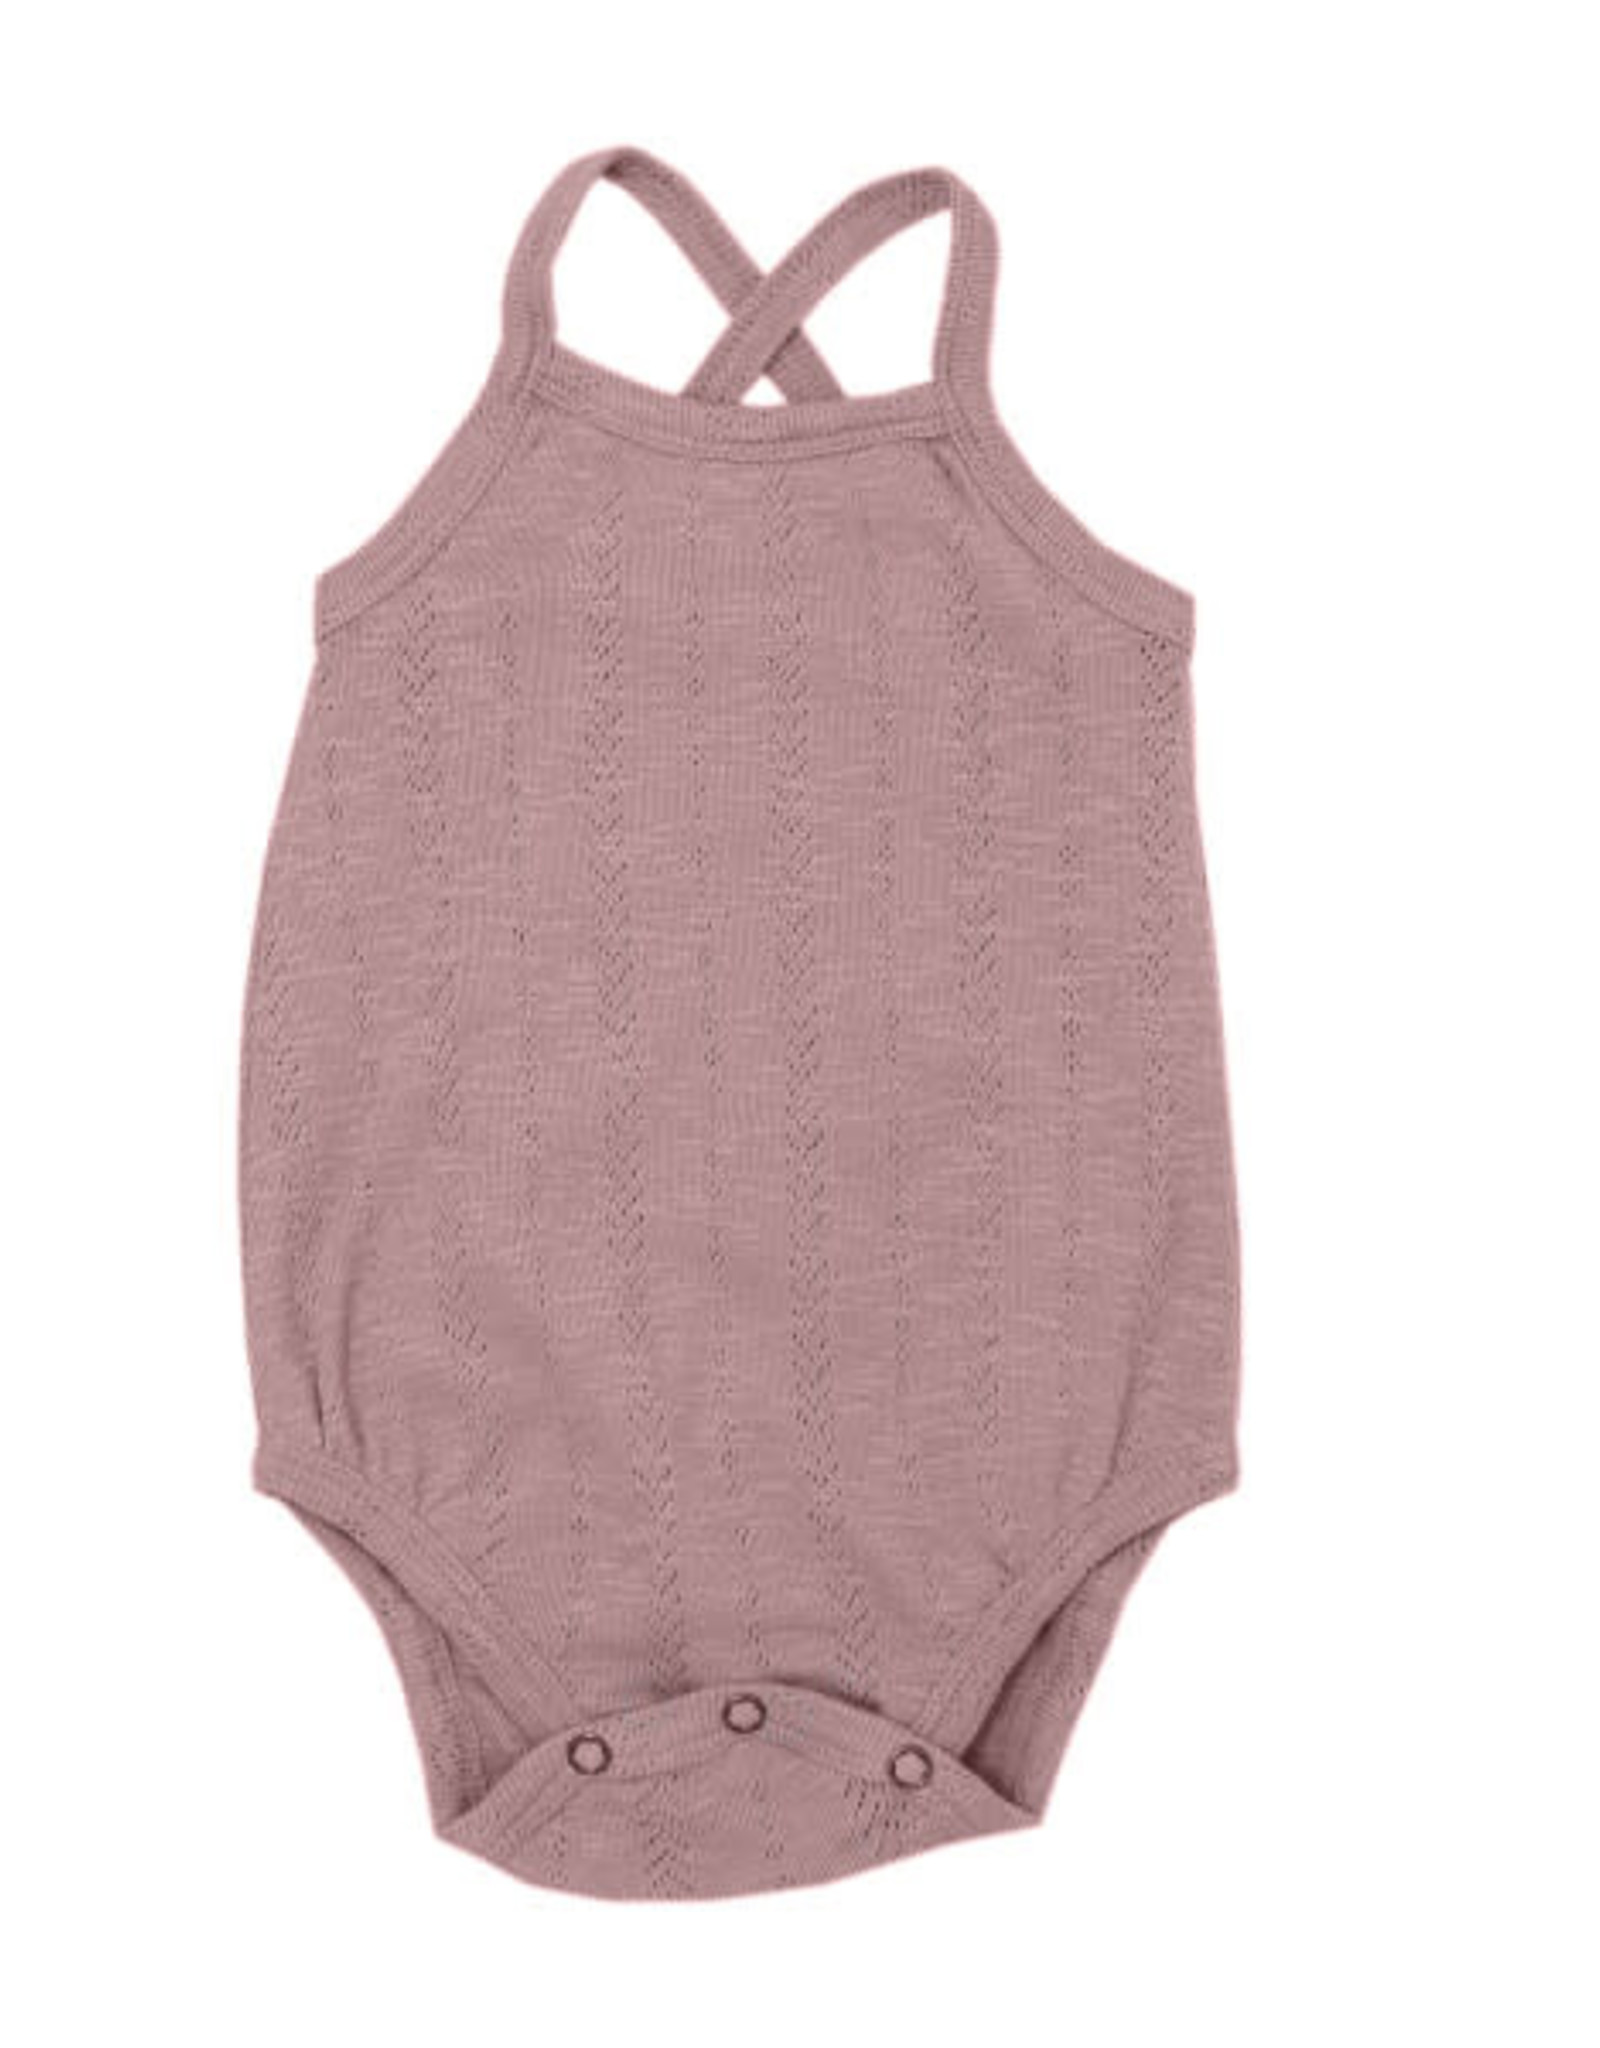 L'oved Baby Pointelle Crossback Bodysuit Thistle